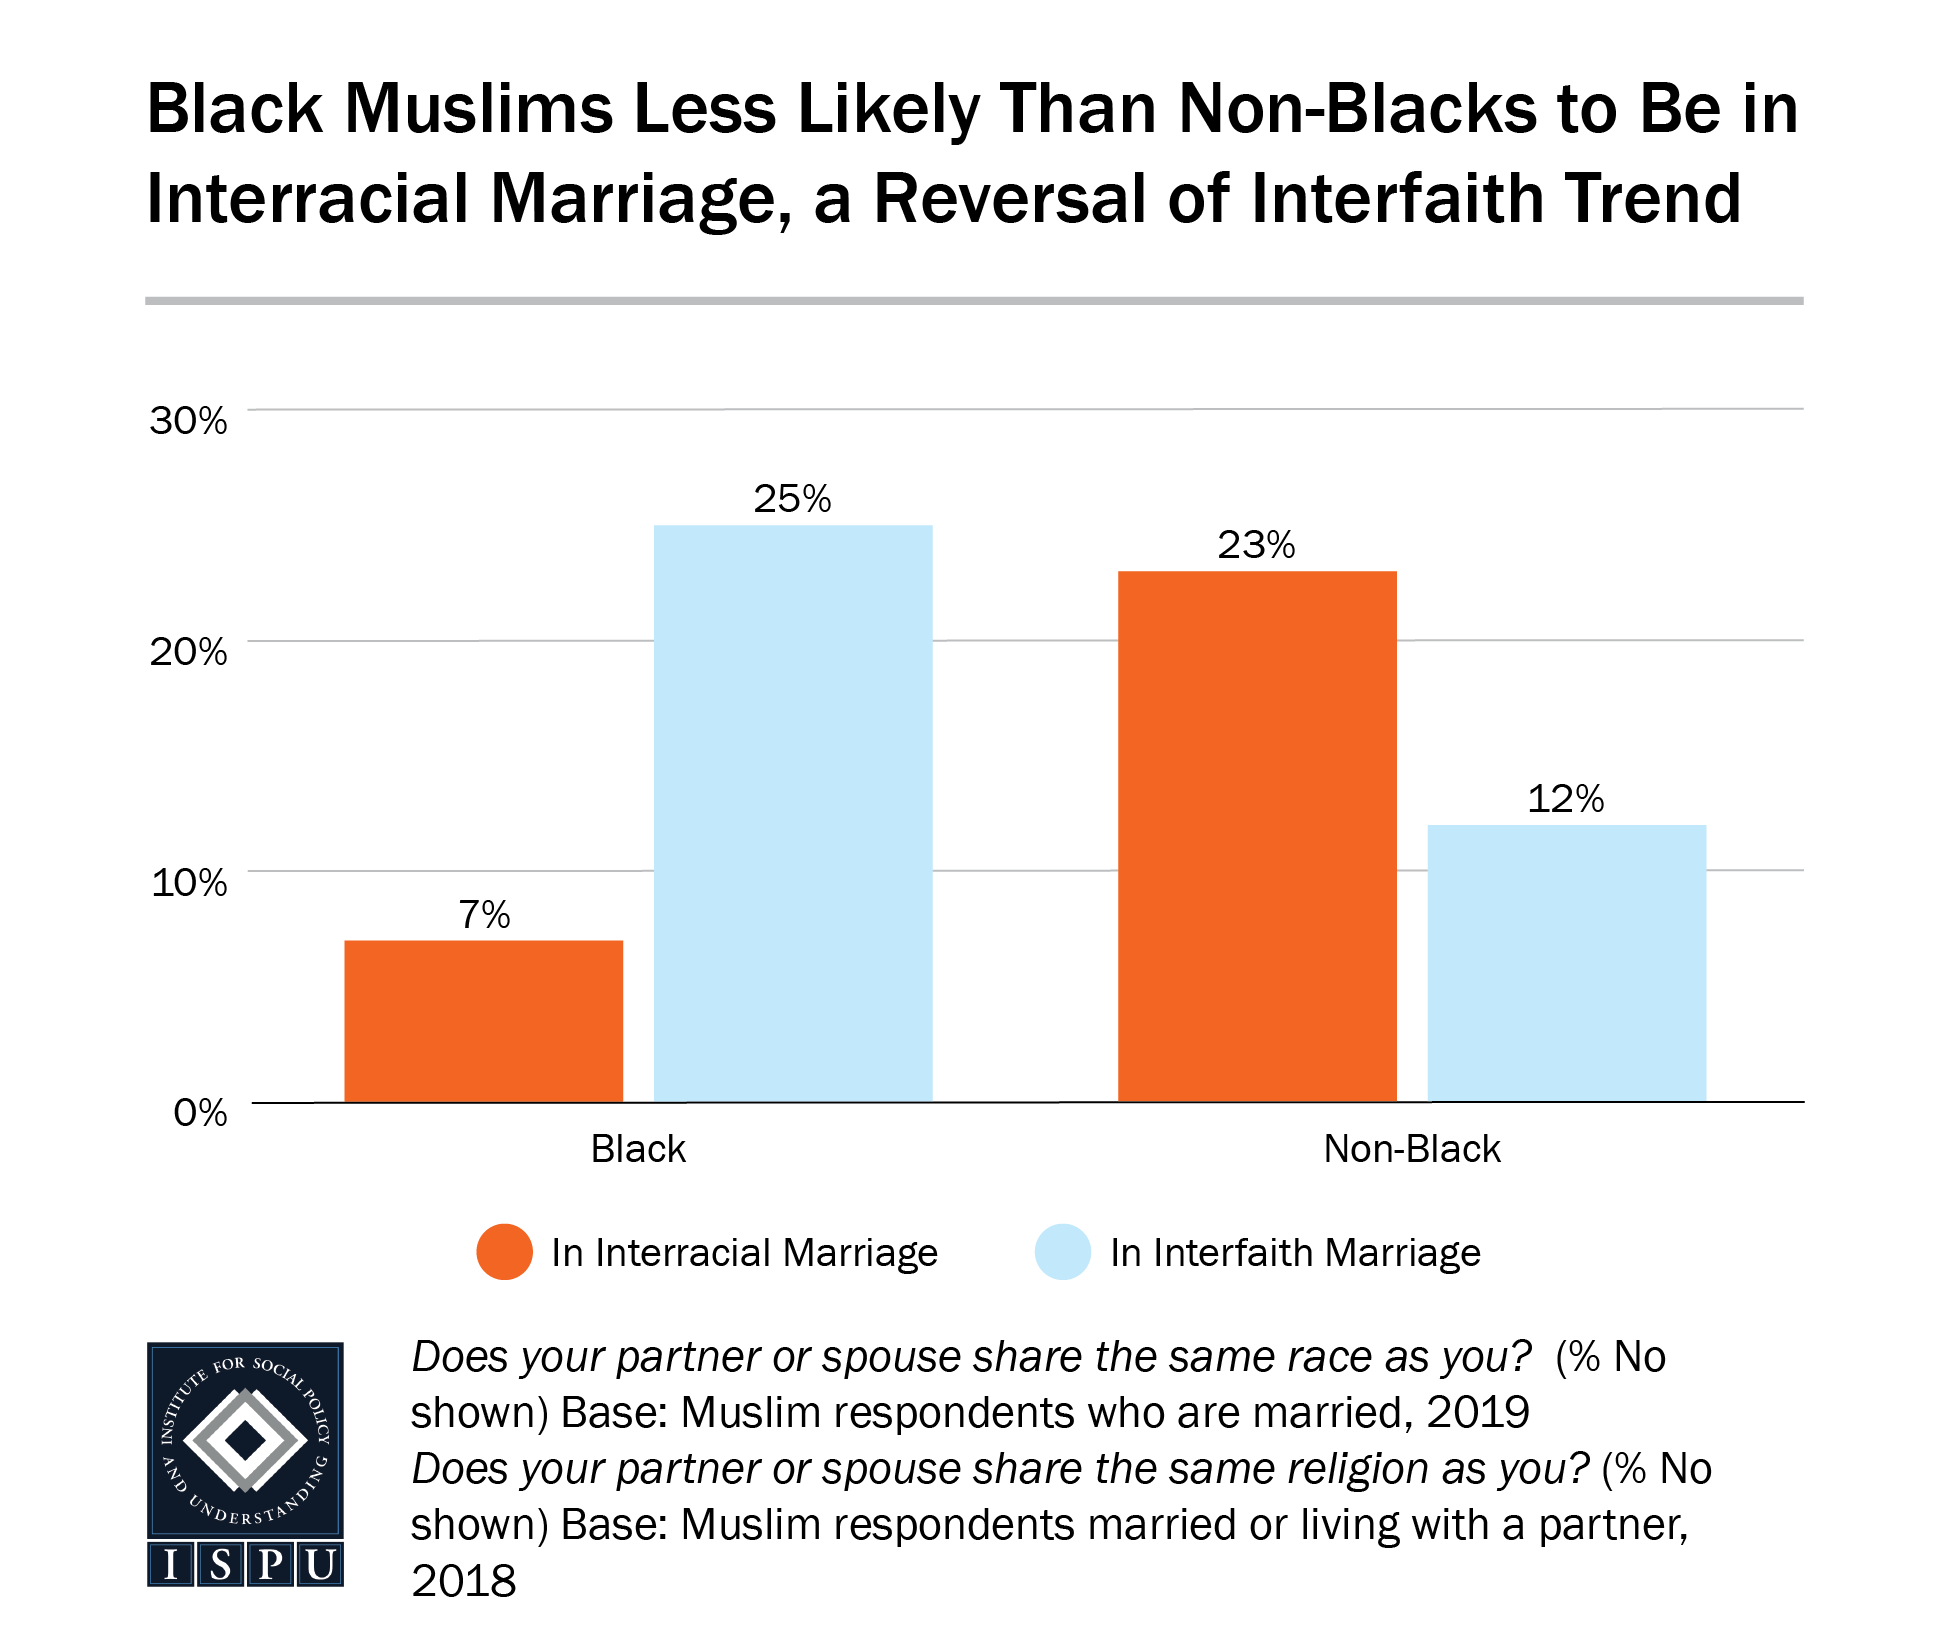 A bar graph showing that Black Muslims are less likely than non-Black Muslims to be in an interracial marriage, a reversal of interfaith trend